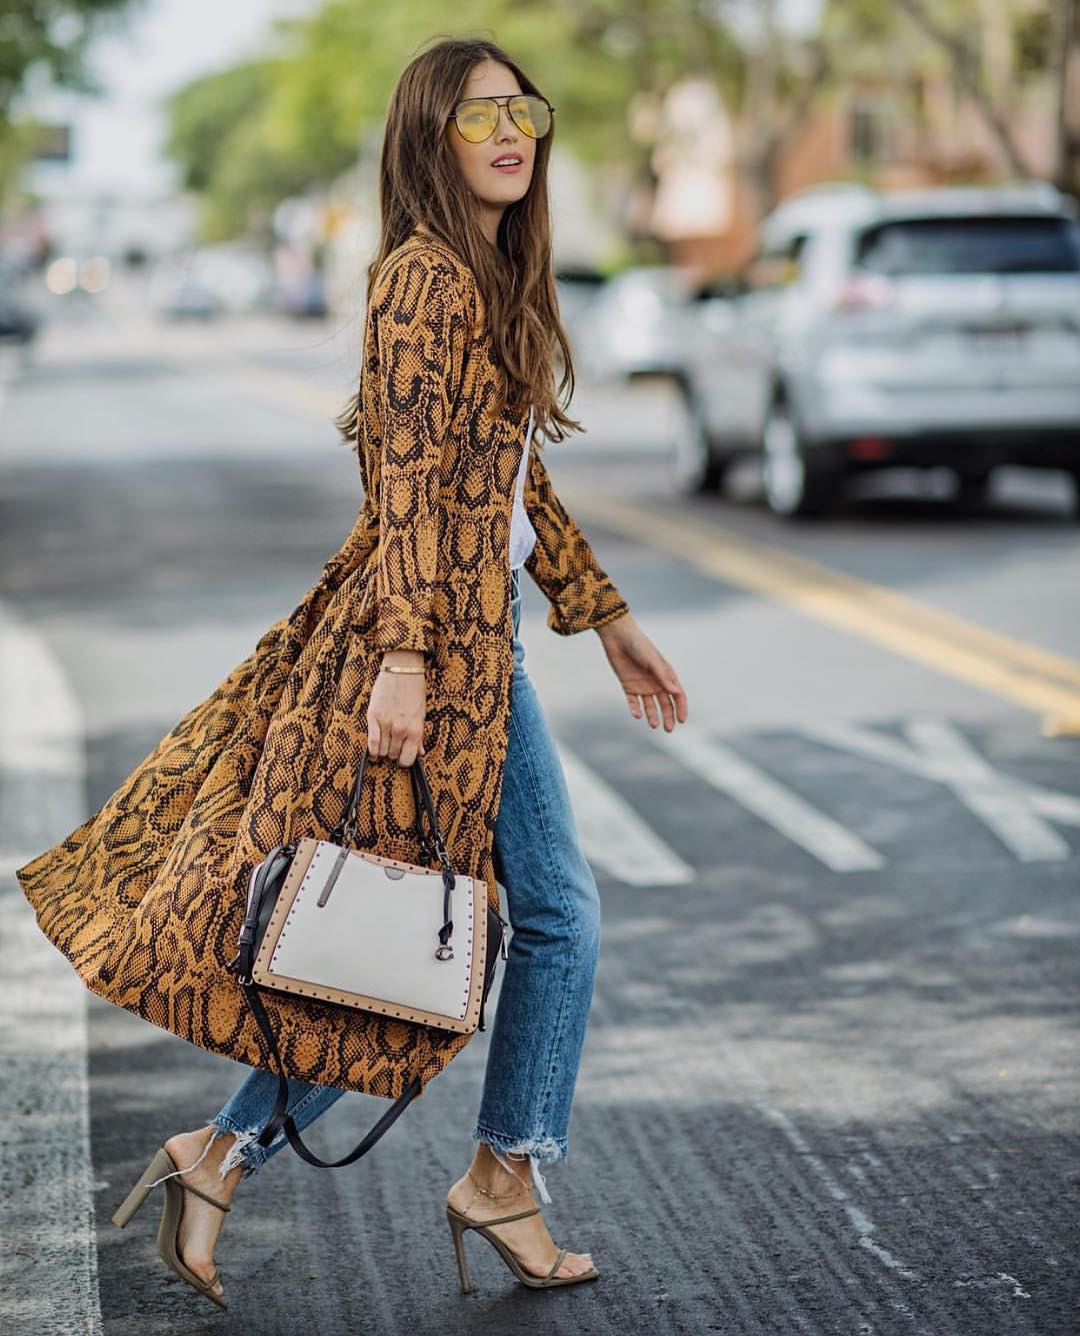 How To Wear Snakeskin Print Coat This Spring In London 2020